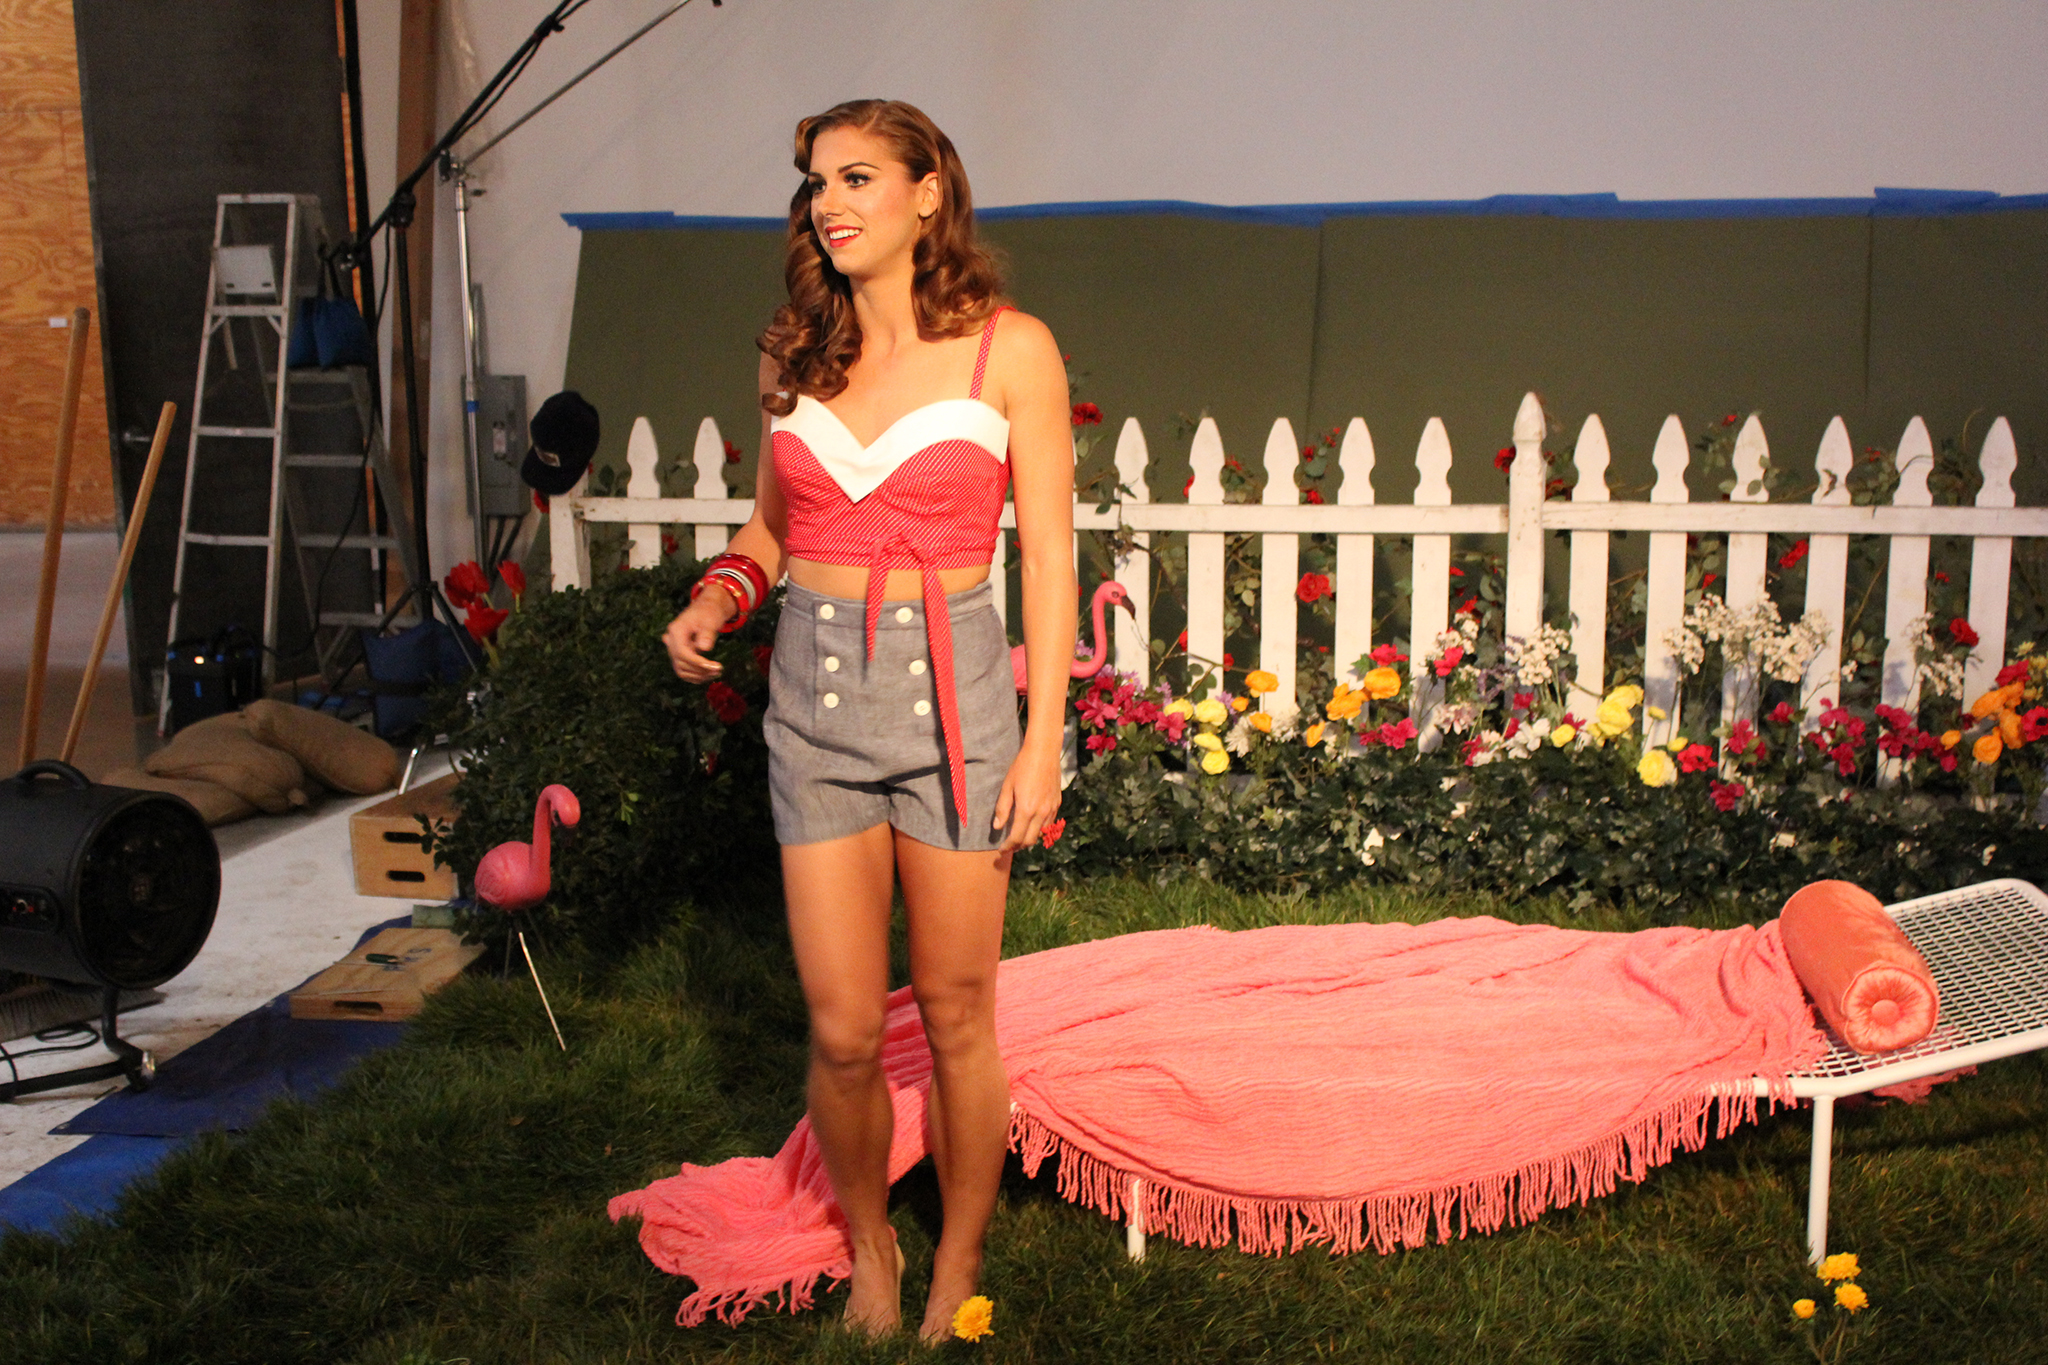 Photos & Video: Alex Morgan poses as Katy Perry for ESPN's 'music issue' magazine